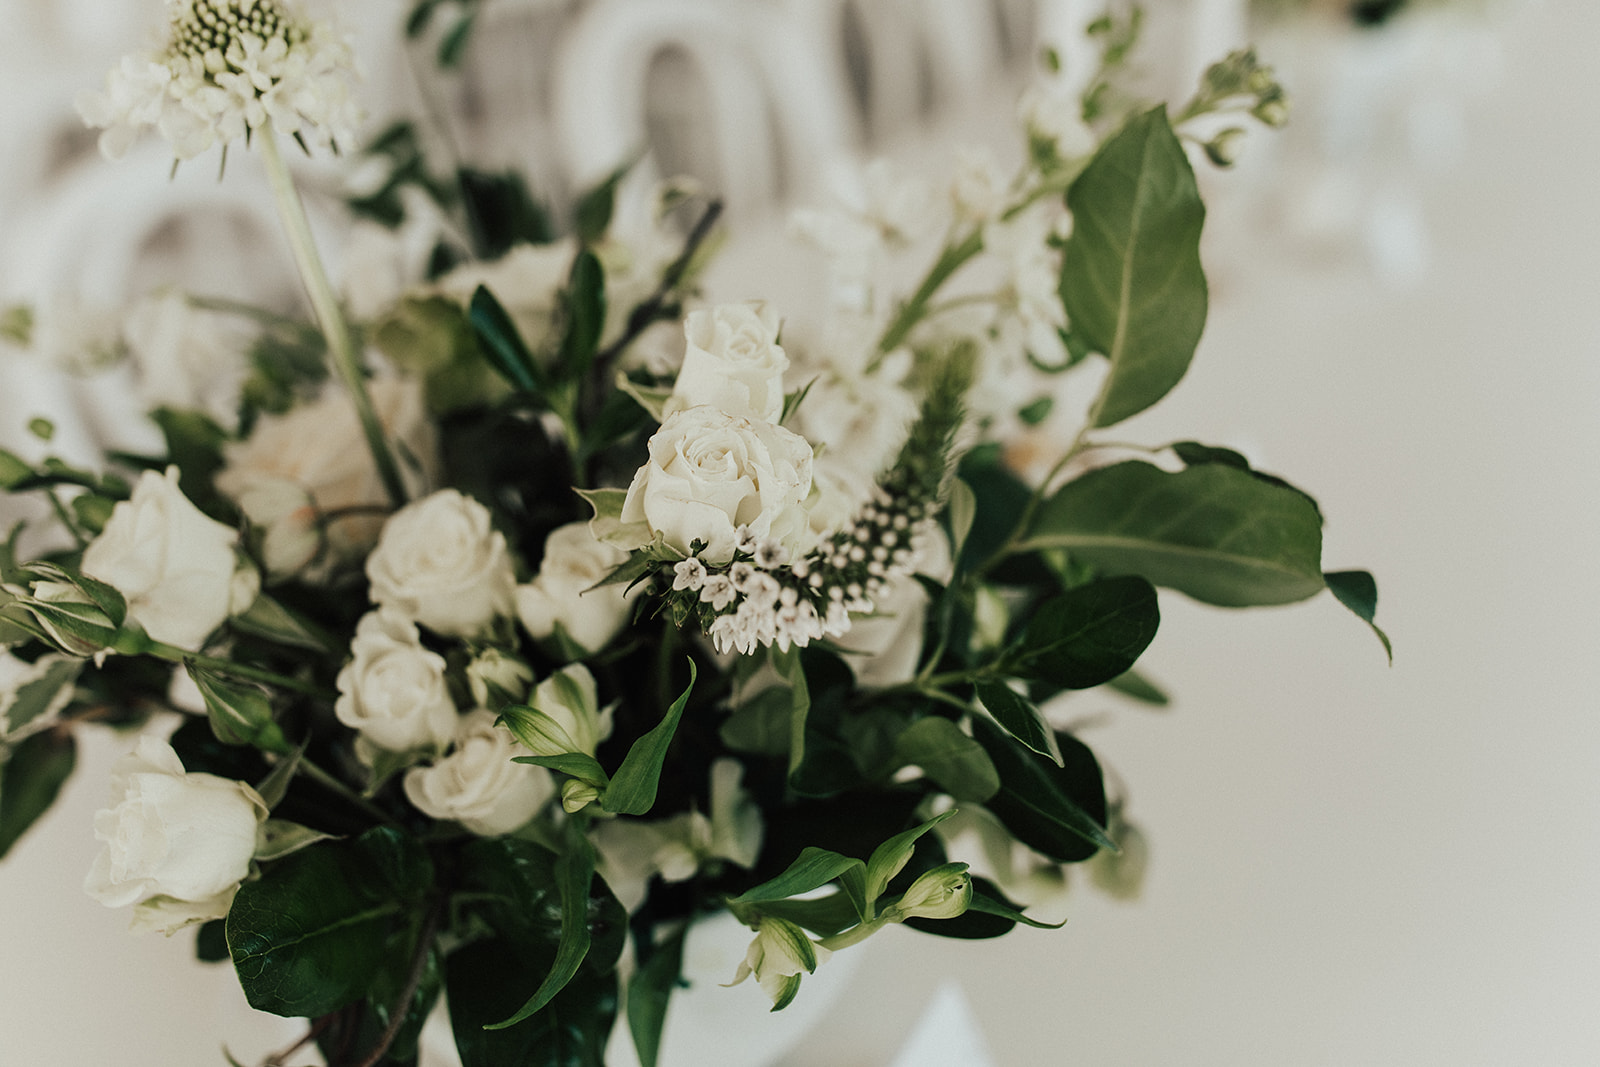 Greenery and White Wedding Centerpieces from TR Florals